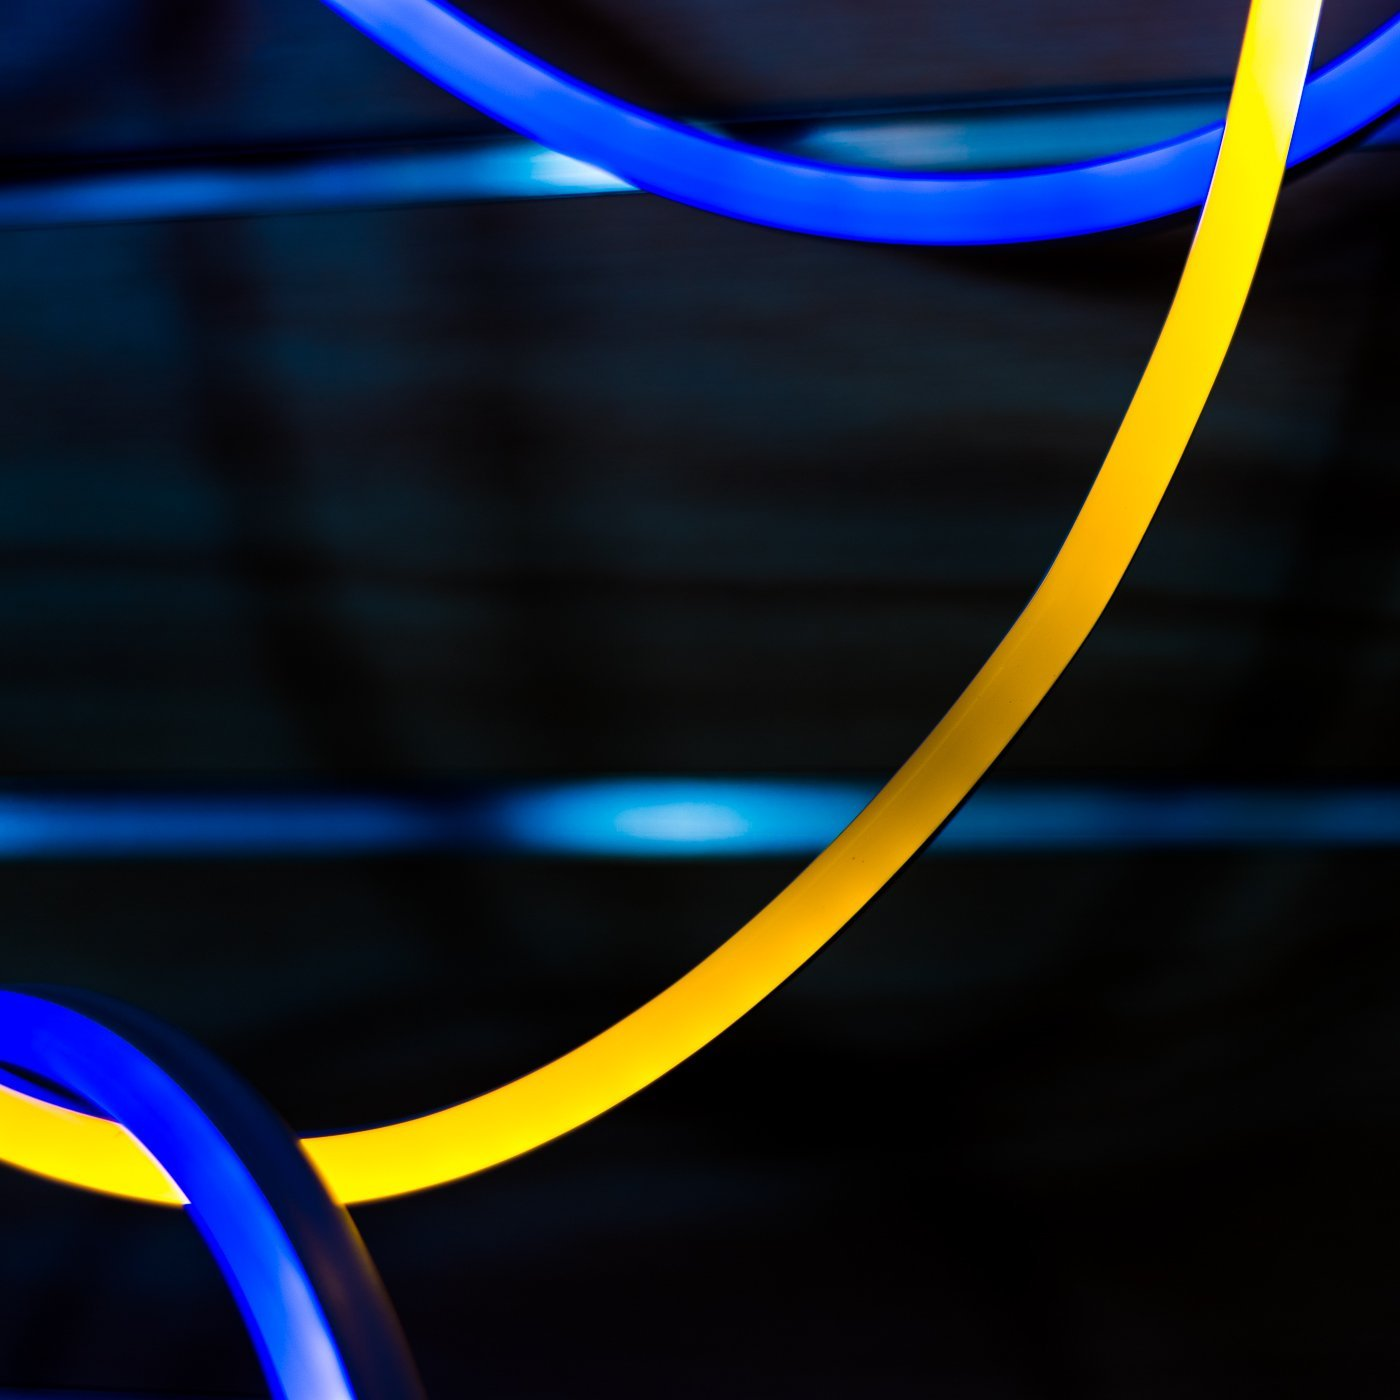 Flexible neon led rope lights 2m long yellow octopus china flexible coloured neon led rope lights mozeypictures Images